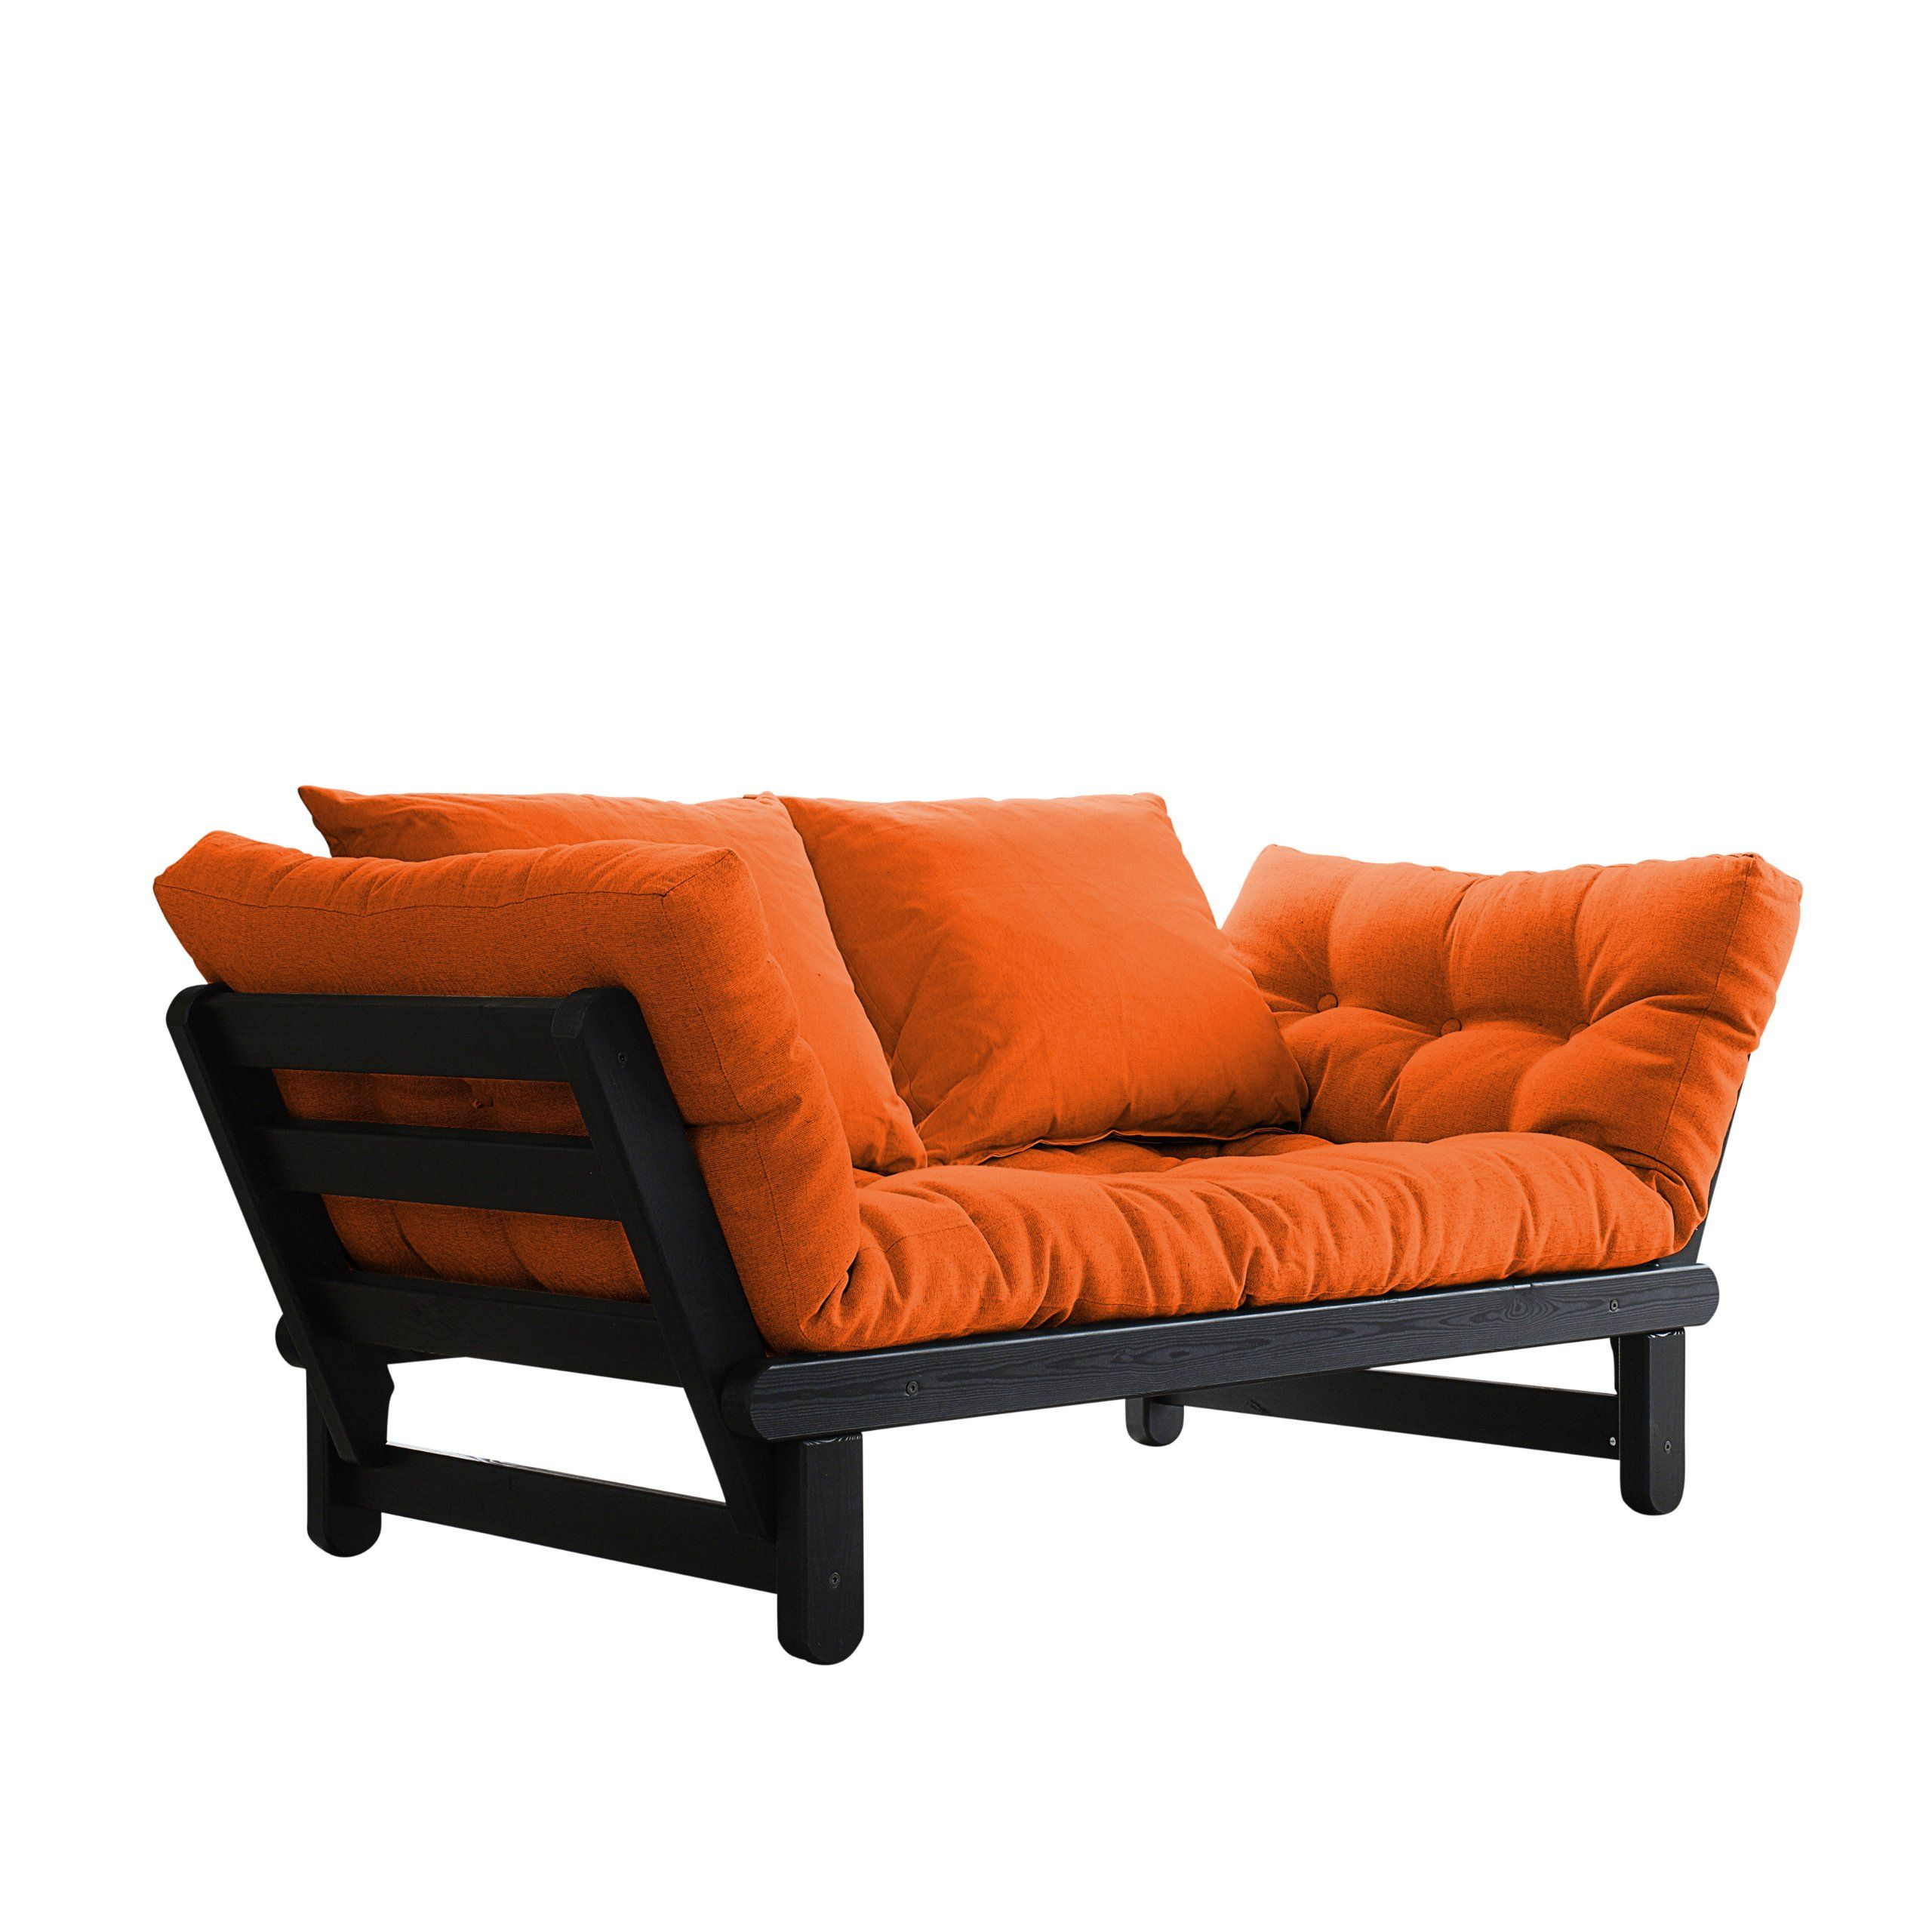 Fresh Futon Beat Convertible Sofa Bed Black Frame Orange Mattress